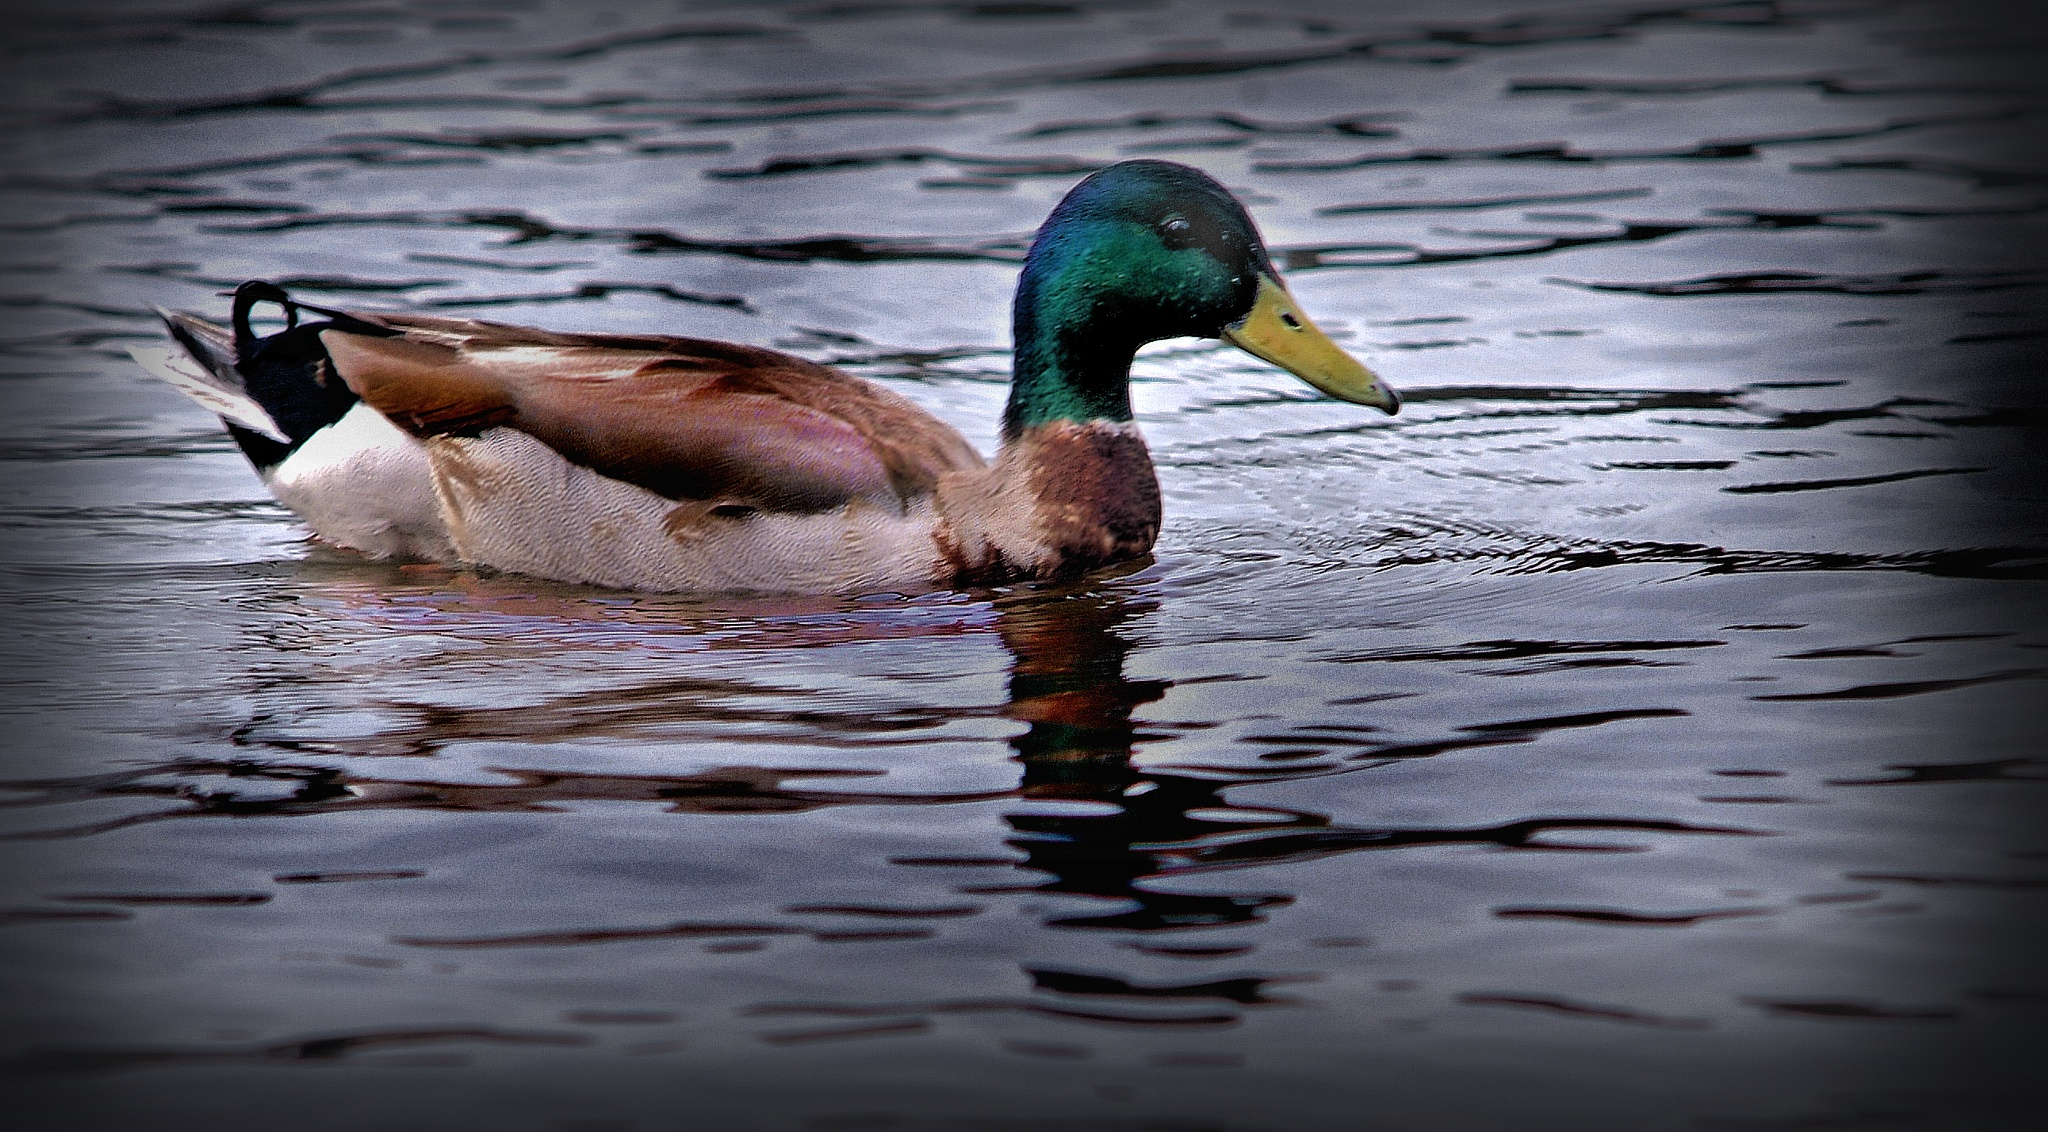 ...Why a duck by C michael anthony